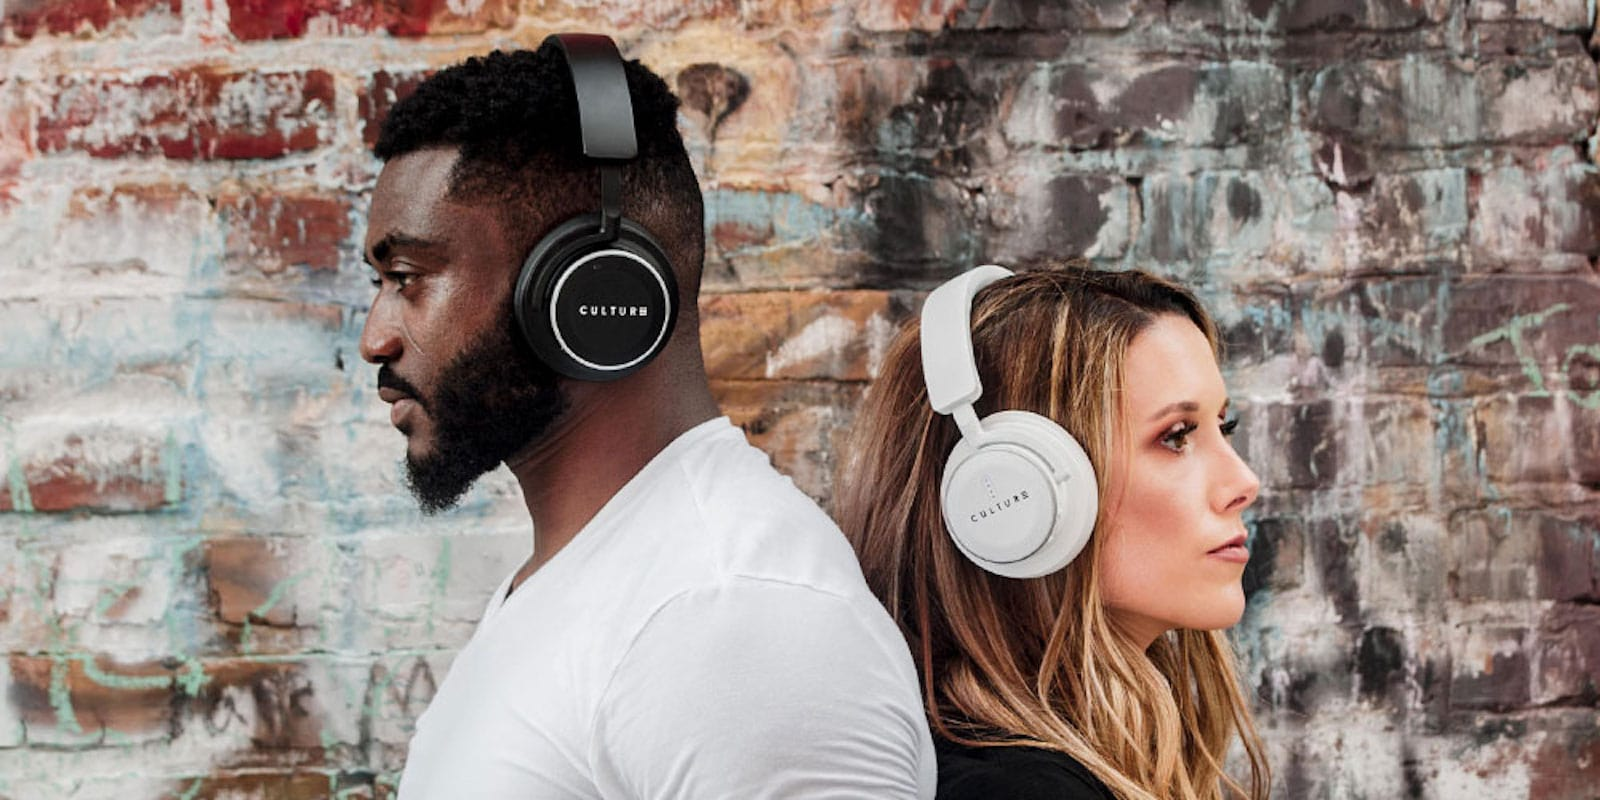 Culture Audio: These feature-rich headphones include an integrated smart sensor and top-tier noise cancellation